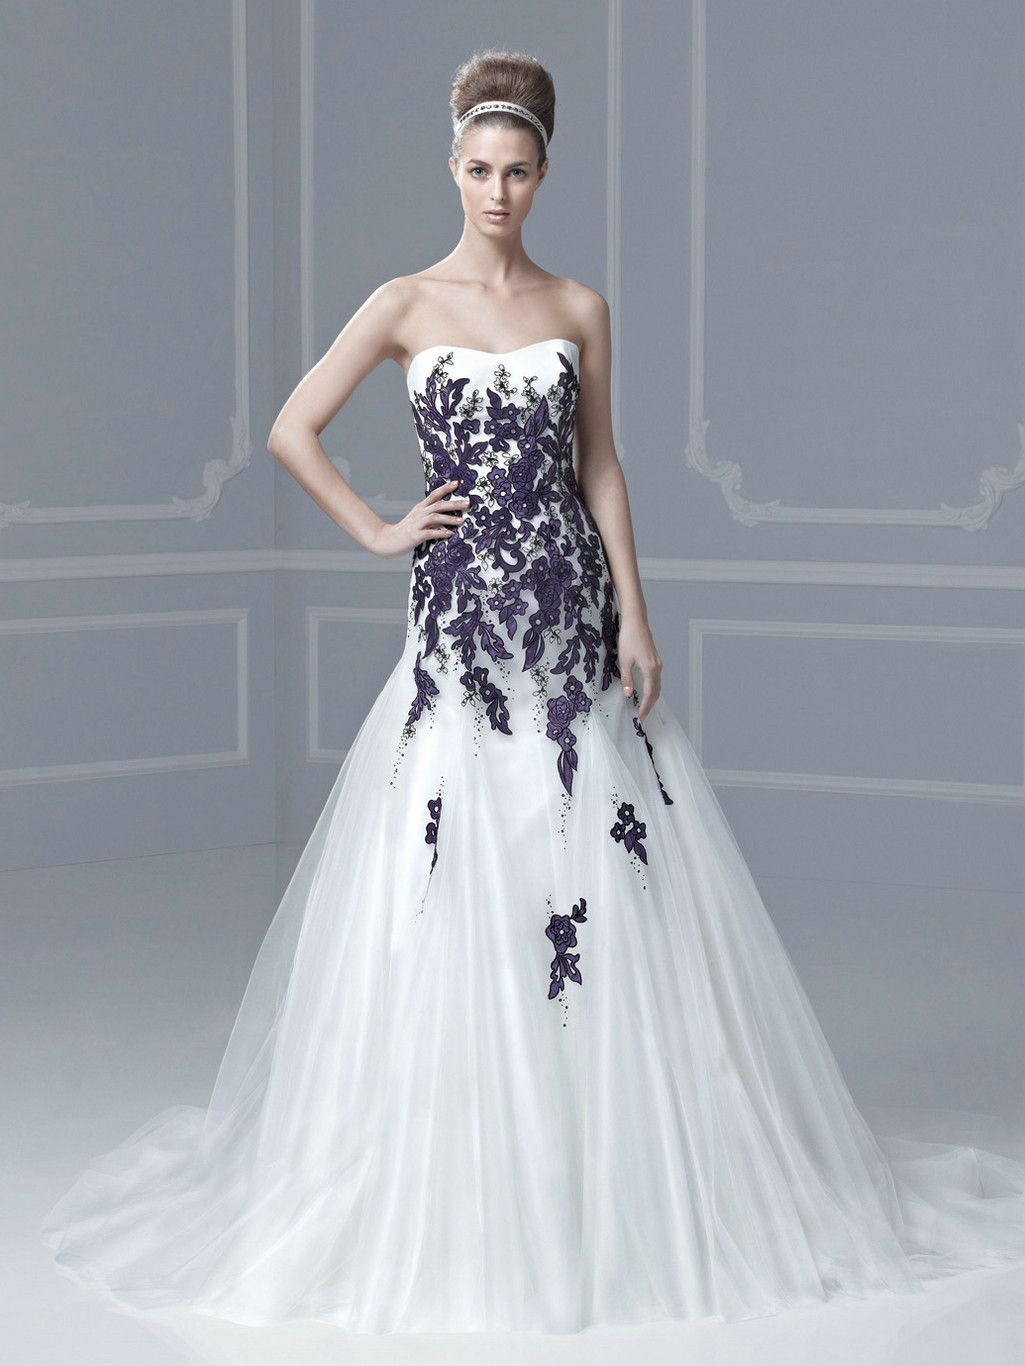 untraditional wedding dresses - Google Search | Wedding dresses ...